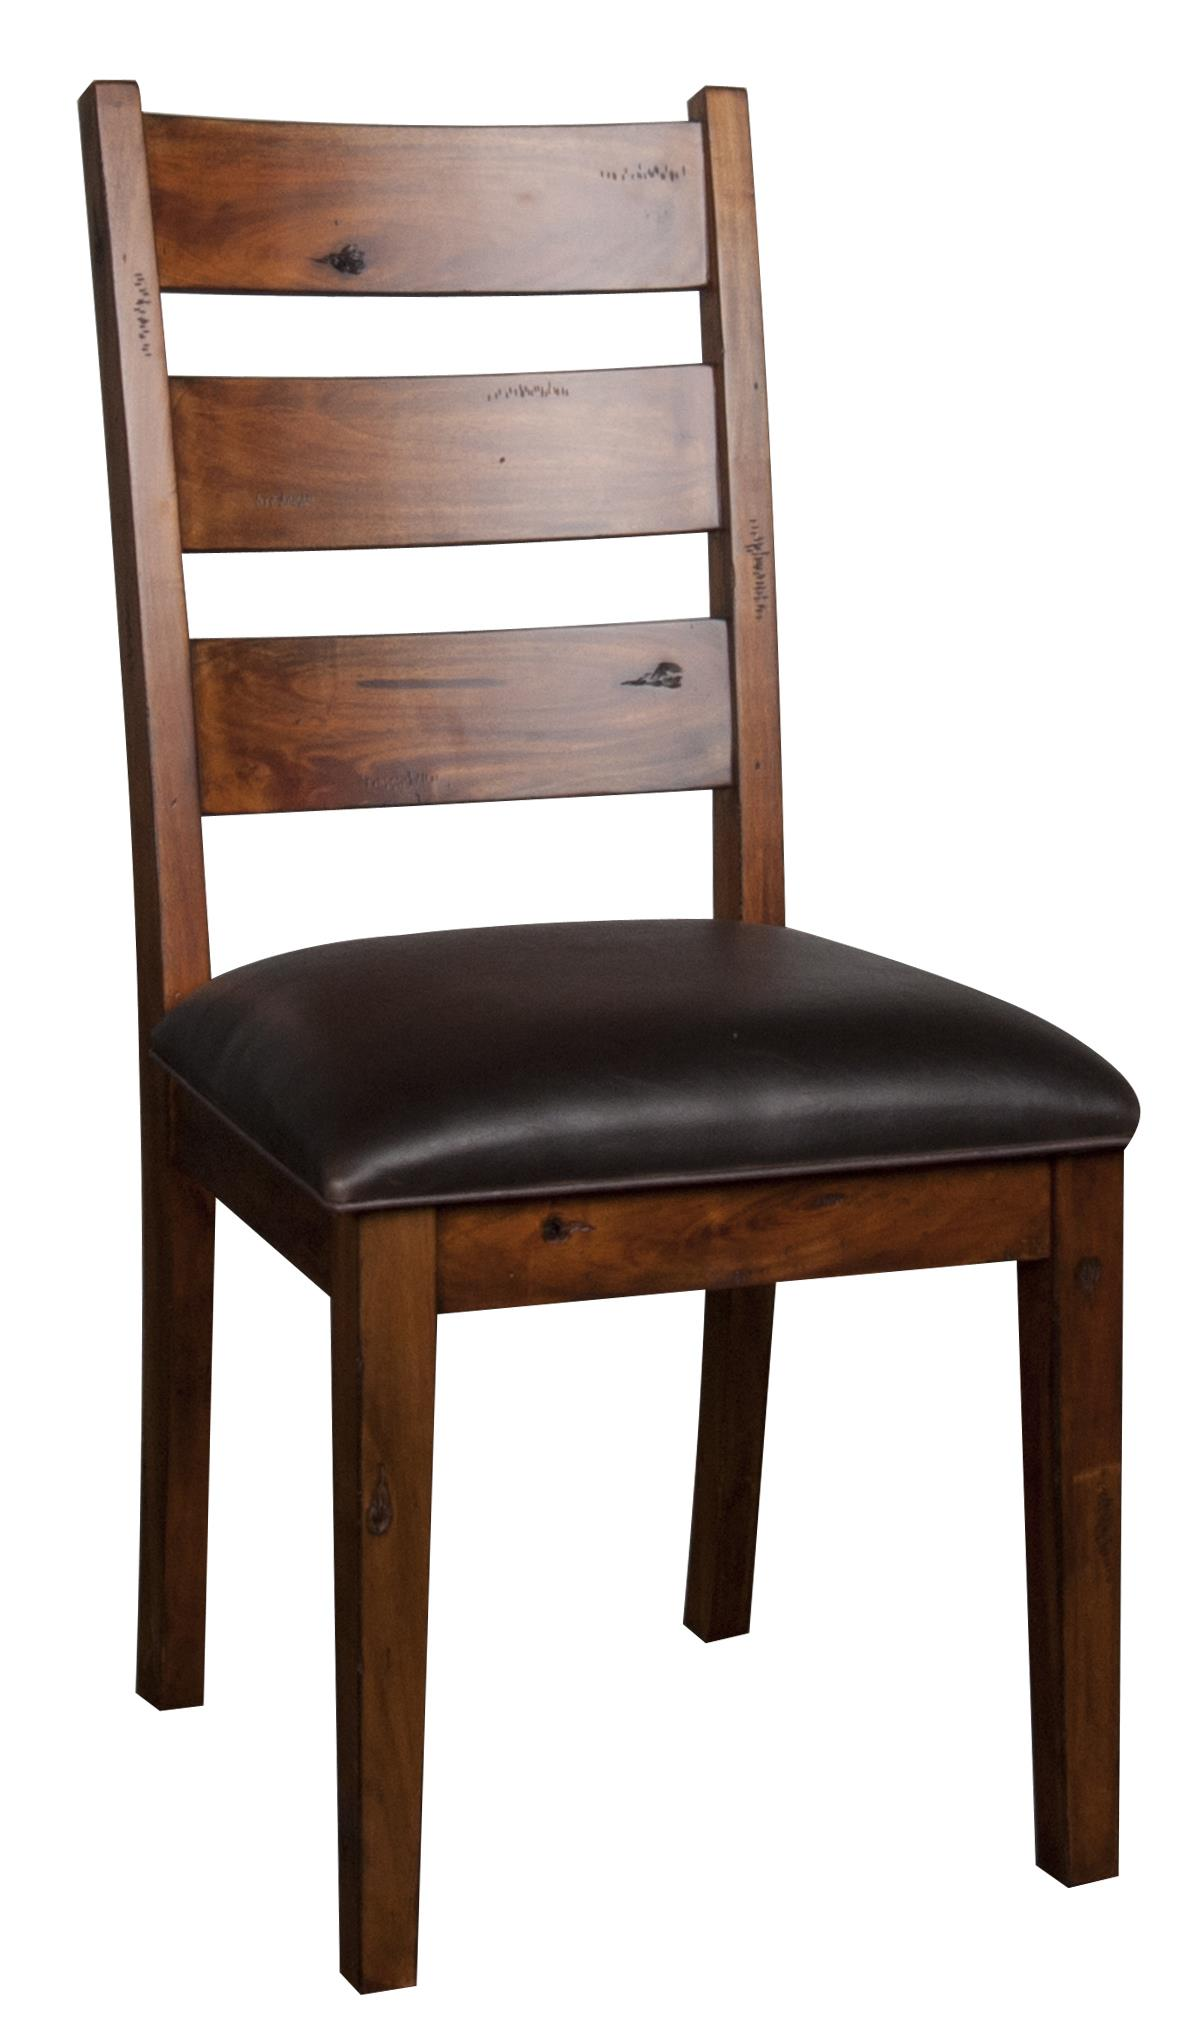 Tremont Tremont Dining Side Chair by Sunny Designs at Morris Home